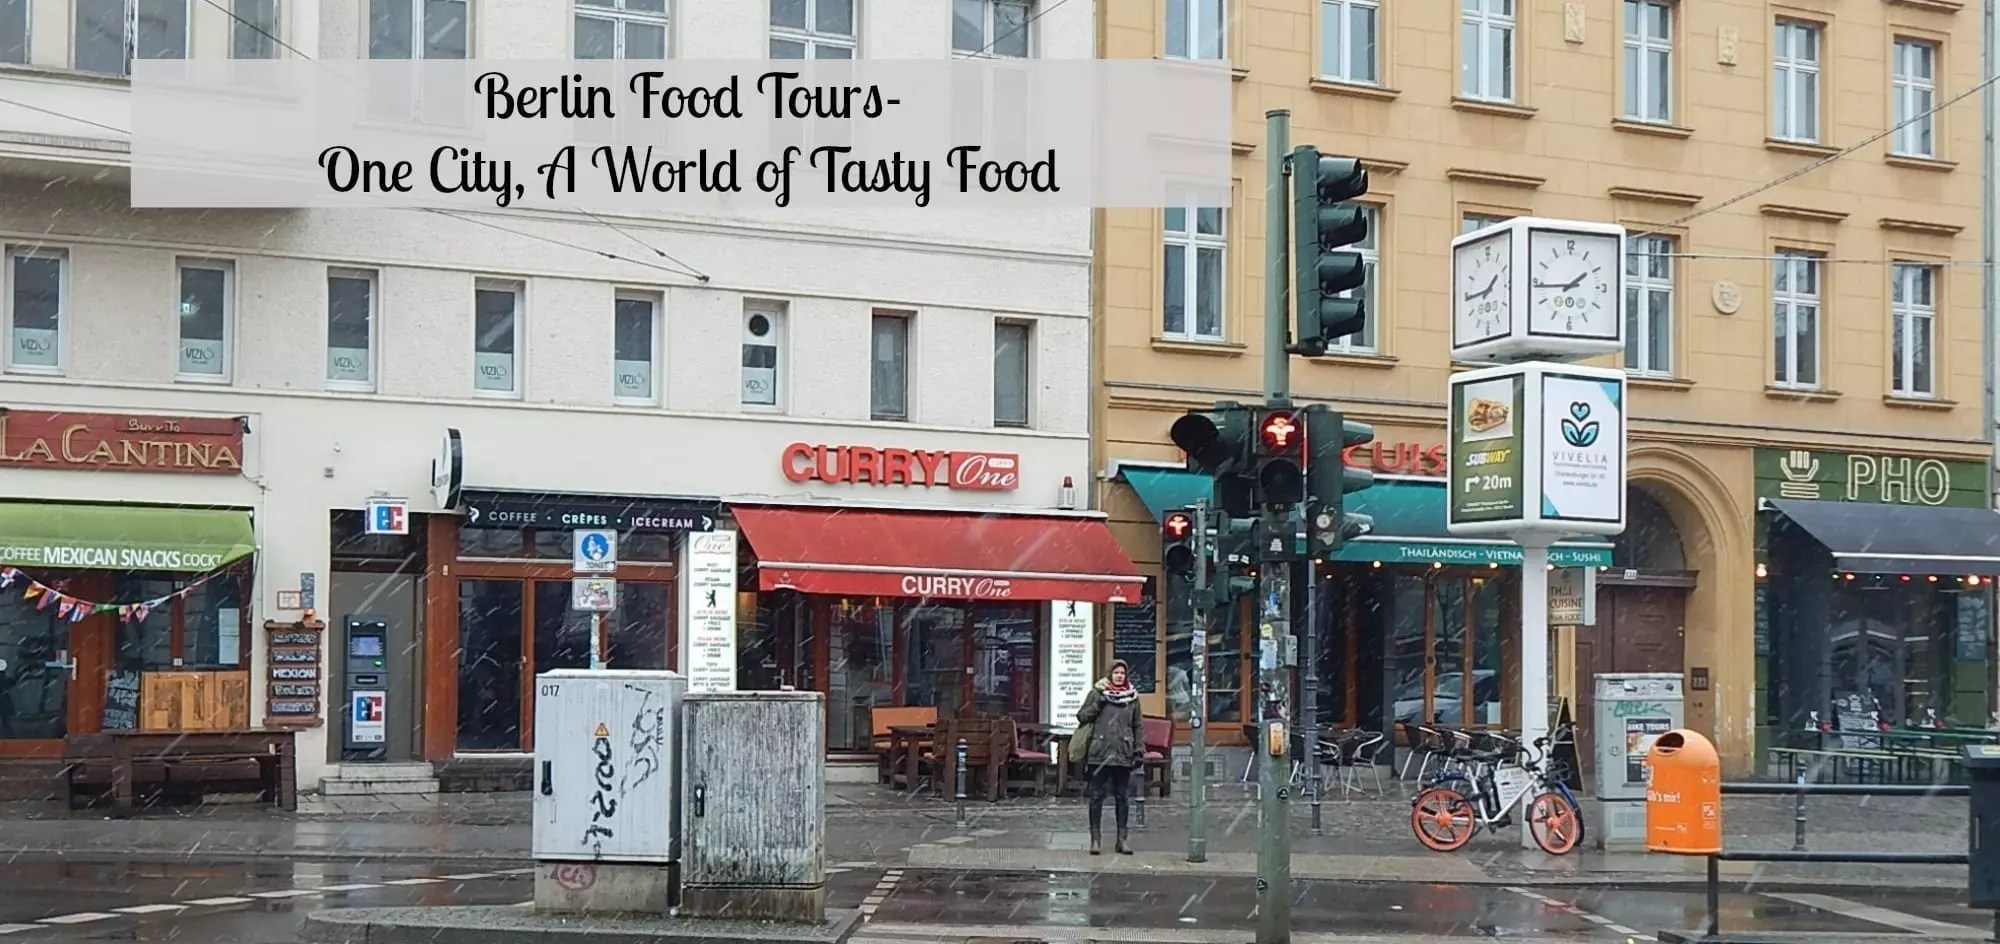 Sushi Bremerhaven Berlin Food Tours Eat Your Way Around The World And Never Leave